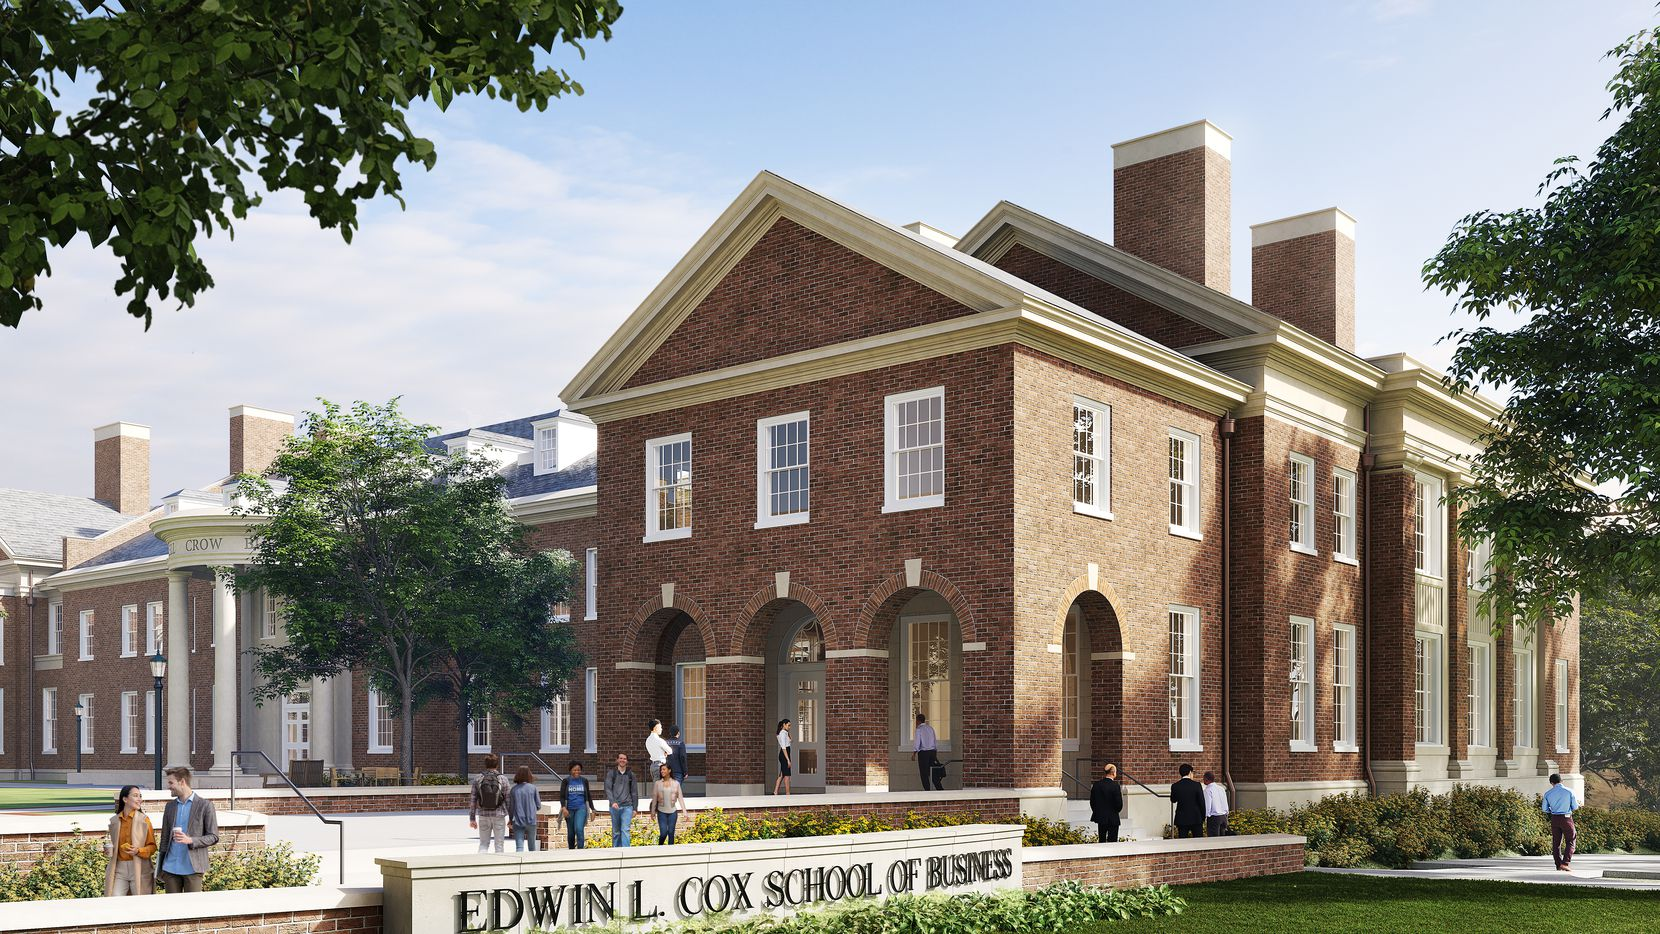 The newest expansion to Southern Methodist University's Cox School of Business, Bryan S. Sheffield Hall, is shown in this rendering. The hall is named after SMU alumnus Bryan Sheffield, who with his wife Sharoll, donated $15 million to the school.